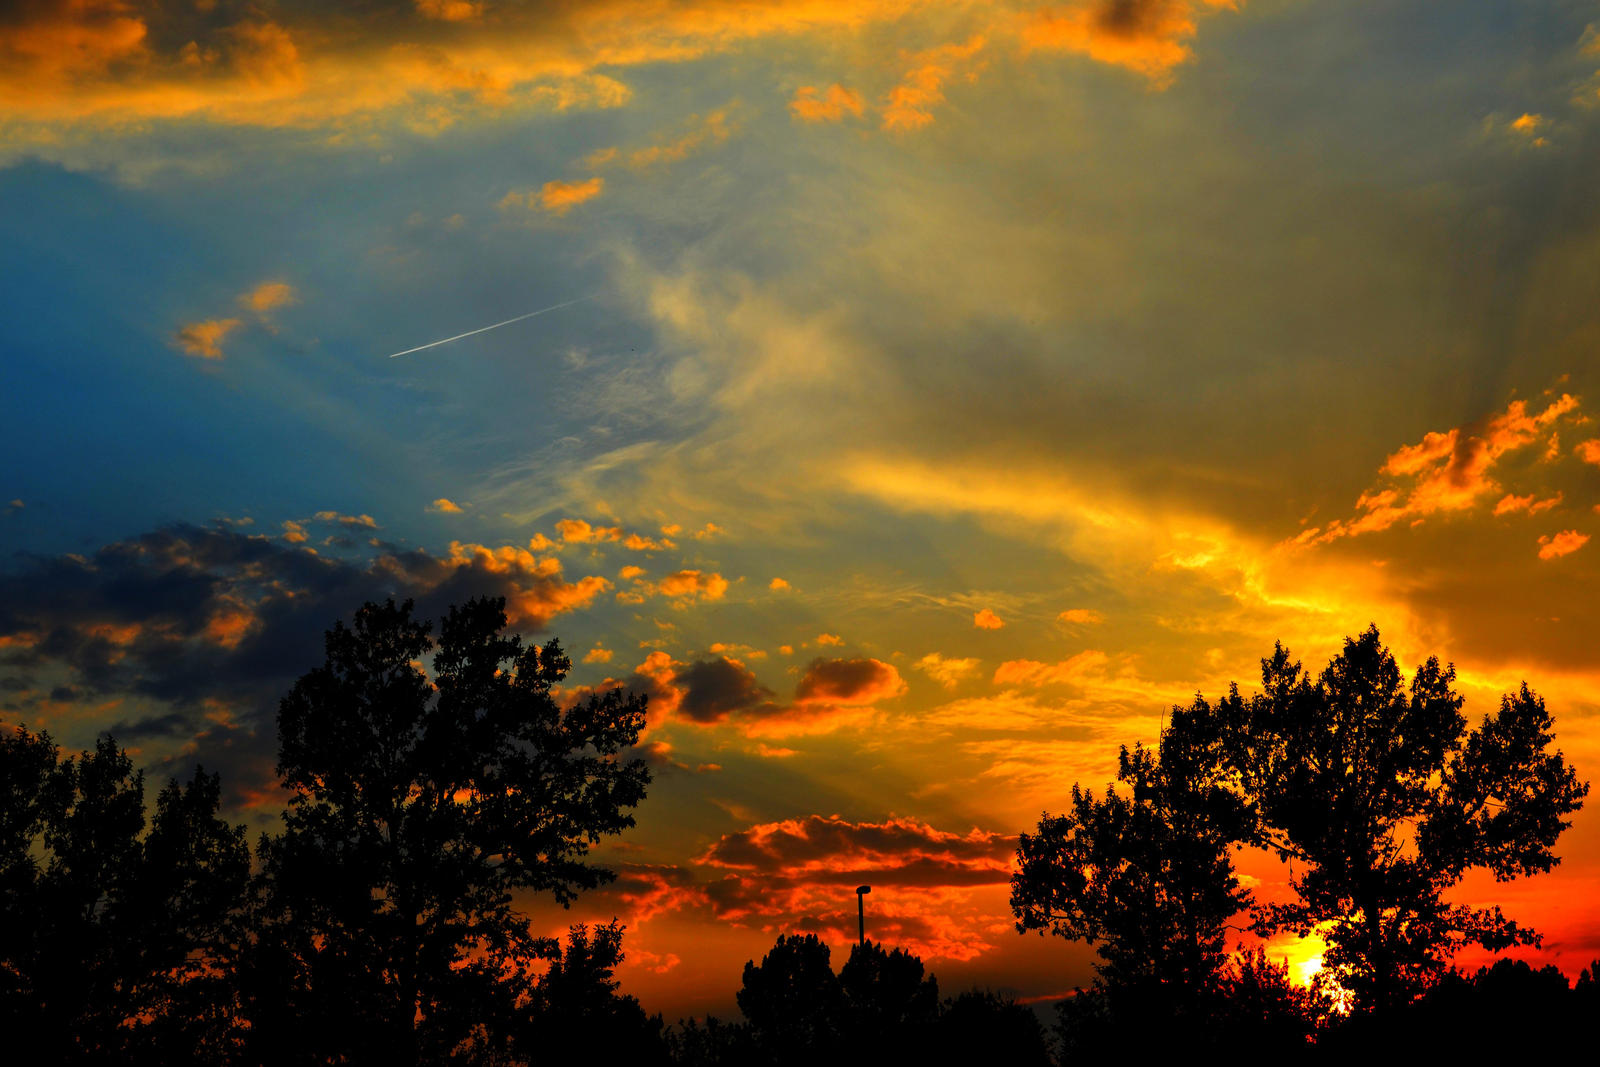 Suite Sunset 0844 by Delta406